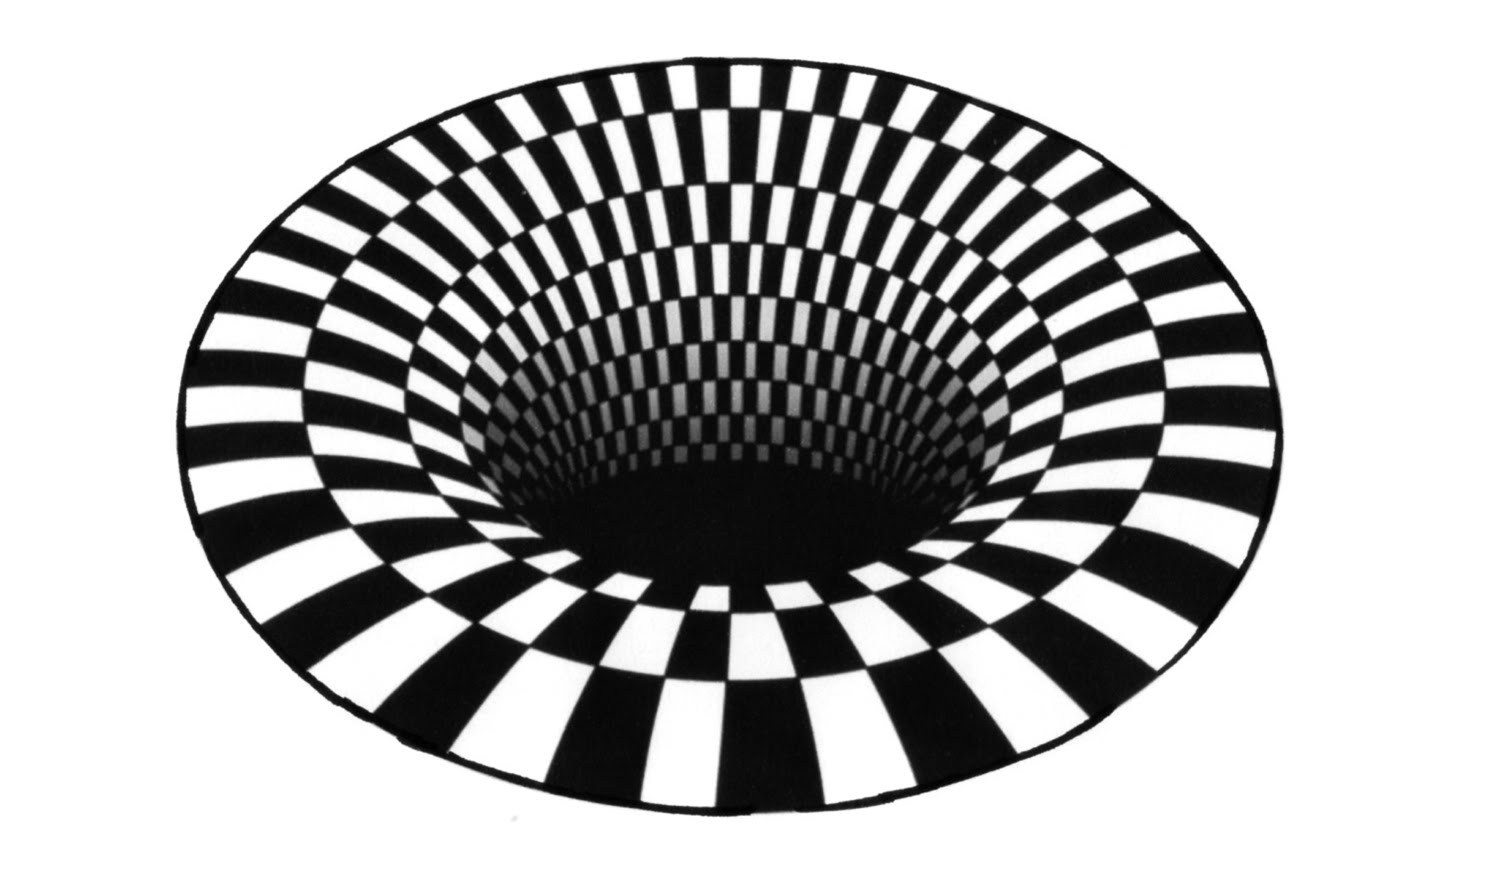 1500x885 How To Draw A 3d Hole (Optical Illusion) Step By Step Easy